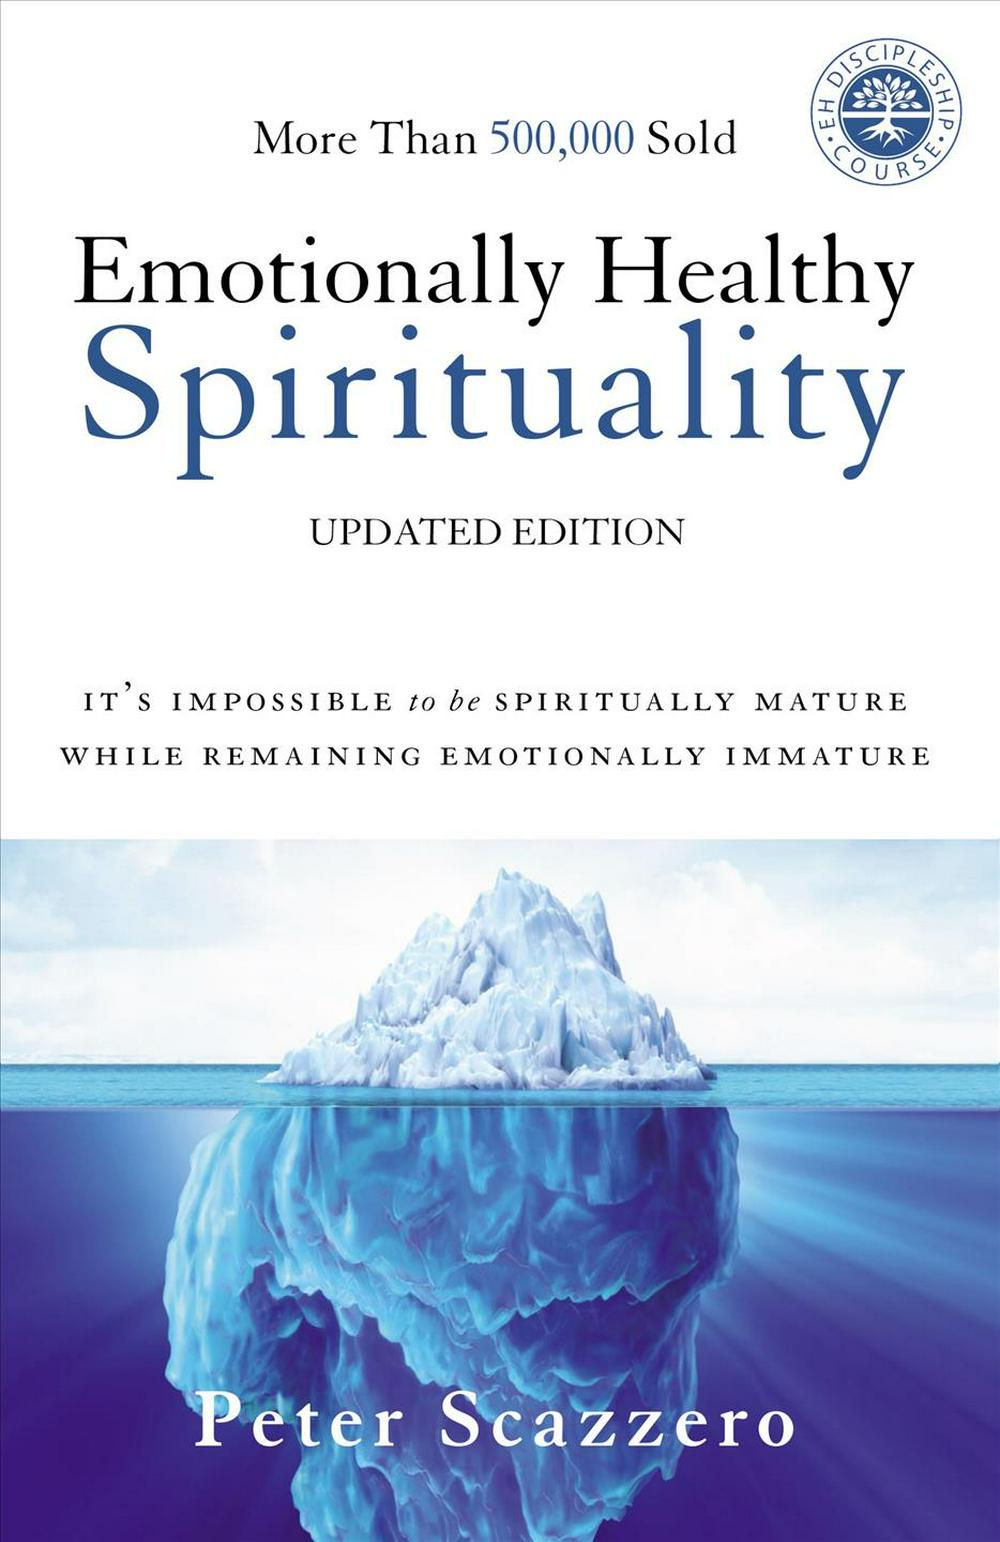 Emotionally Healthy SpiritualityIt's Impossible to be Spiritually Mature, While...